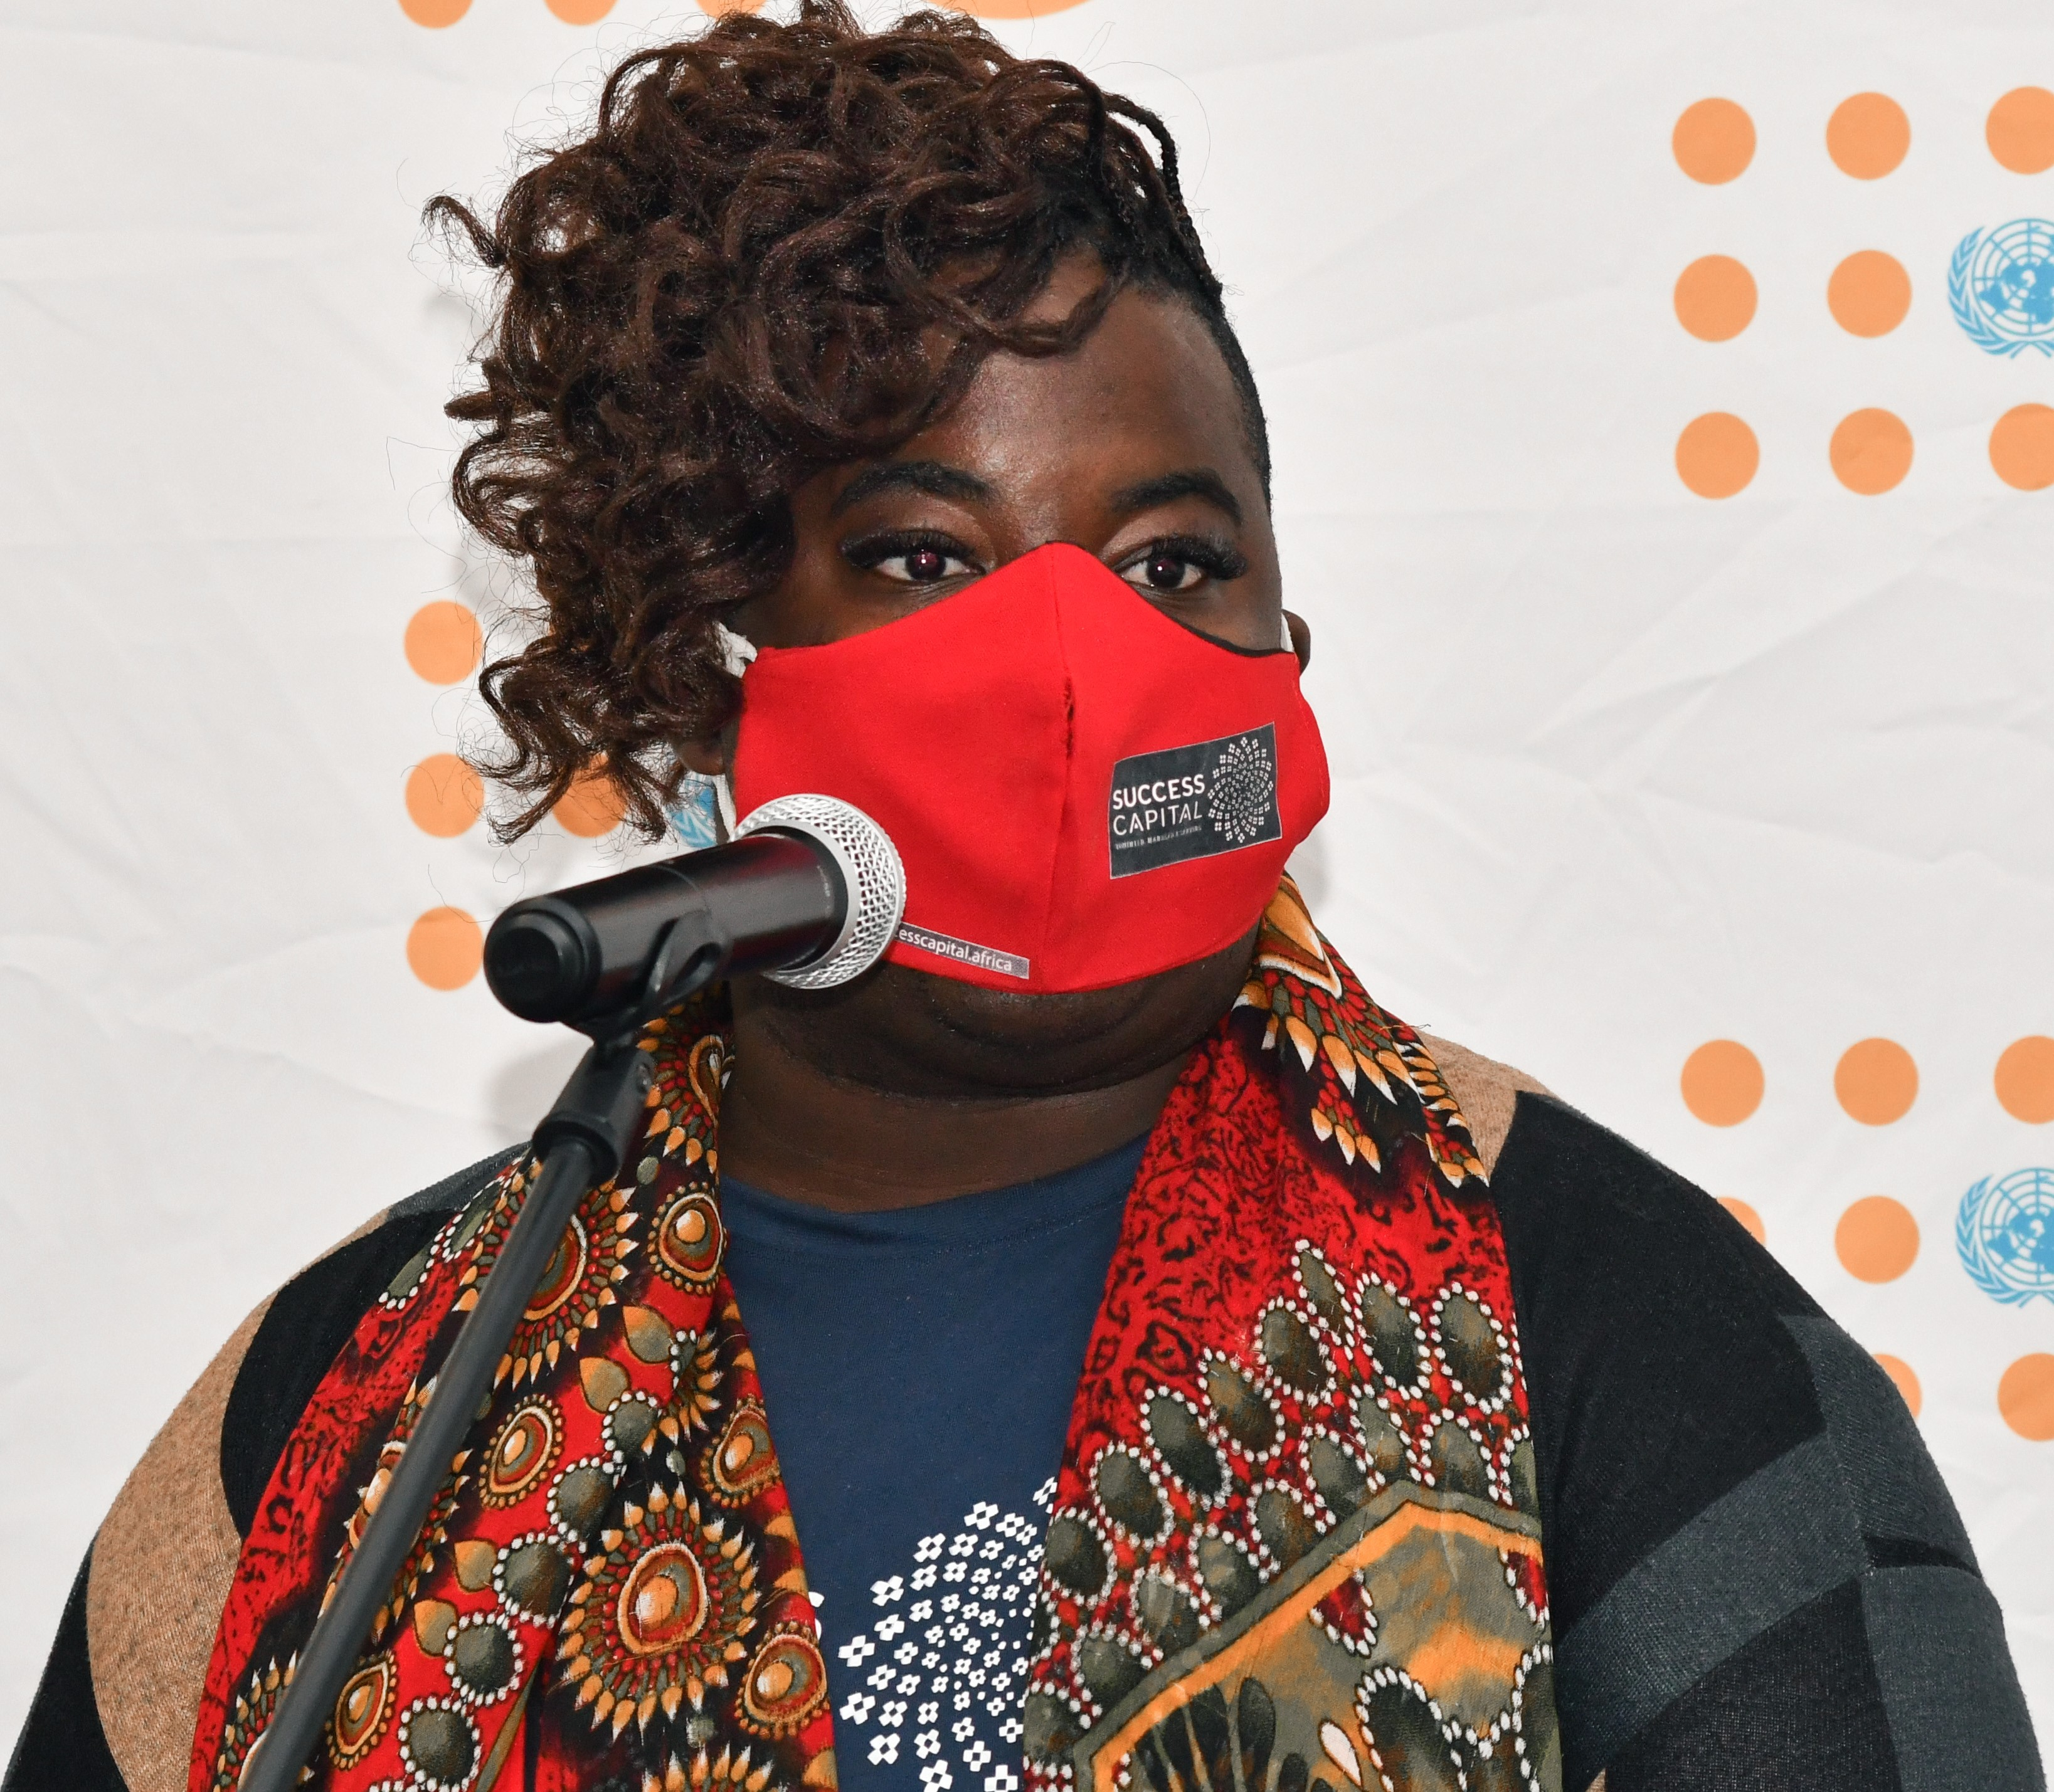 Dumiso Gatsha, an advocate for LGBTQI wants rights of all people to be protected